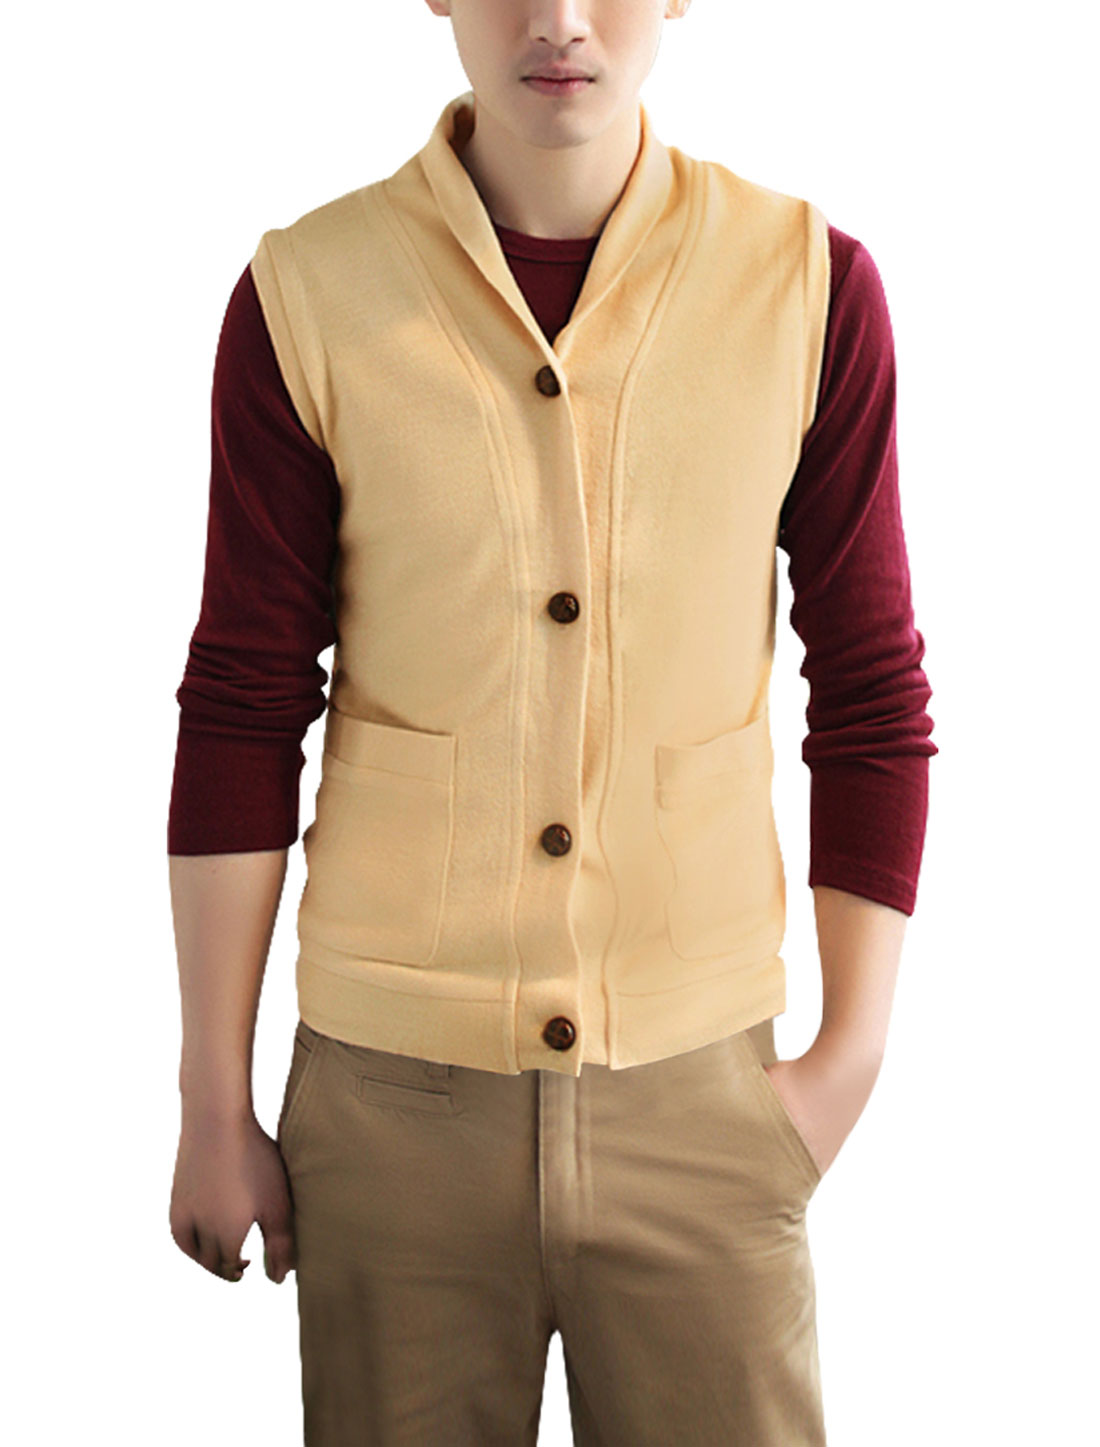 Men Chic Single Breasted Front Pockets Sweater Vest Beige S